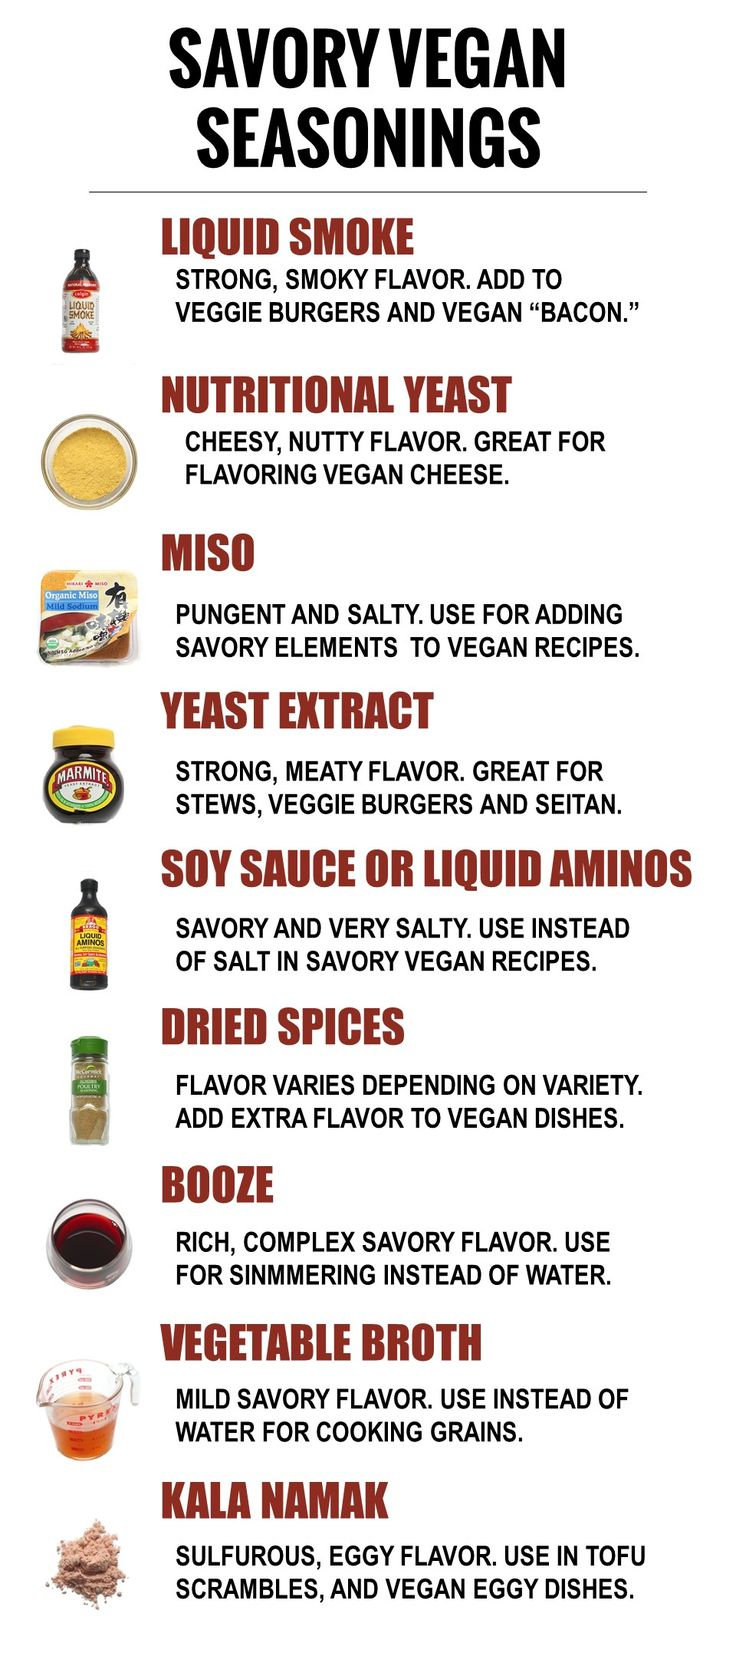 Looking to pin-down that elusive umami flavor in your vegan cooking? The right ingredients will do the trick! Check out these 9 savory vegan seasonings. Whether you're looking for smoky, pungent, meaty or cheesy flavor, keep these on hand to pack your vegan meals with savory flavor.